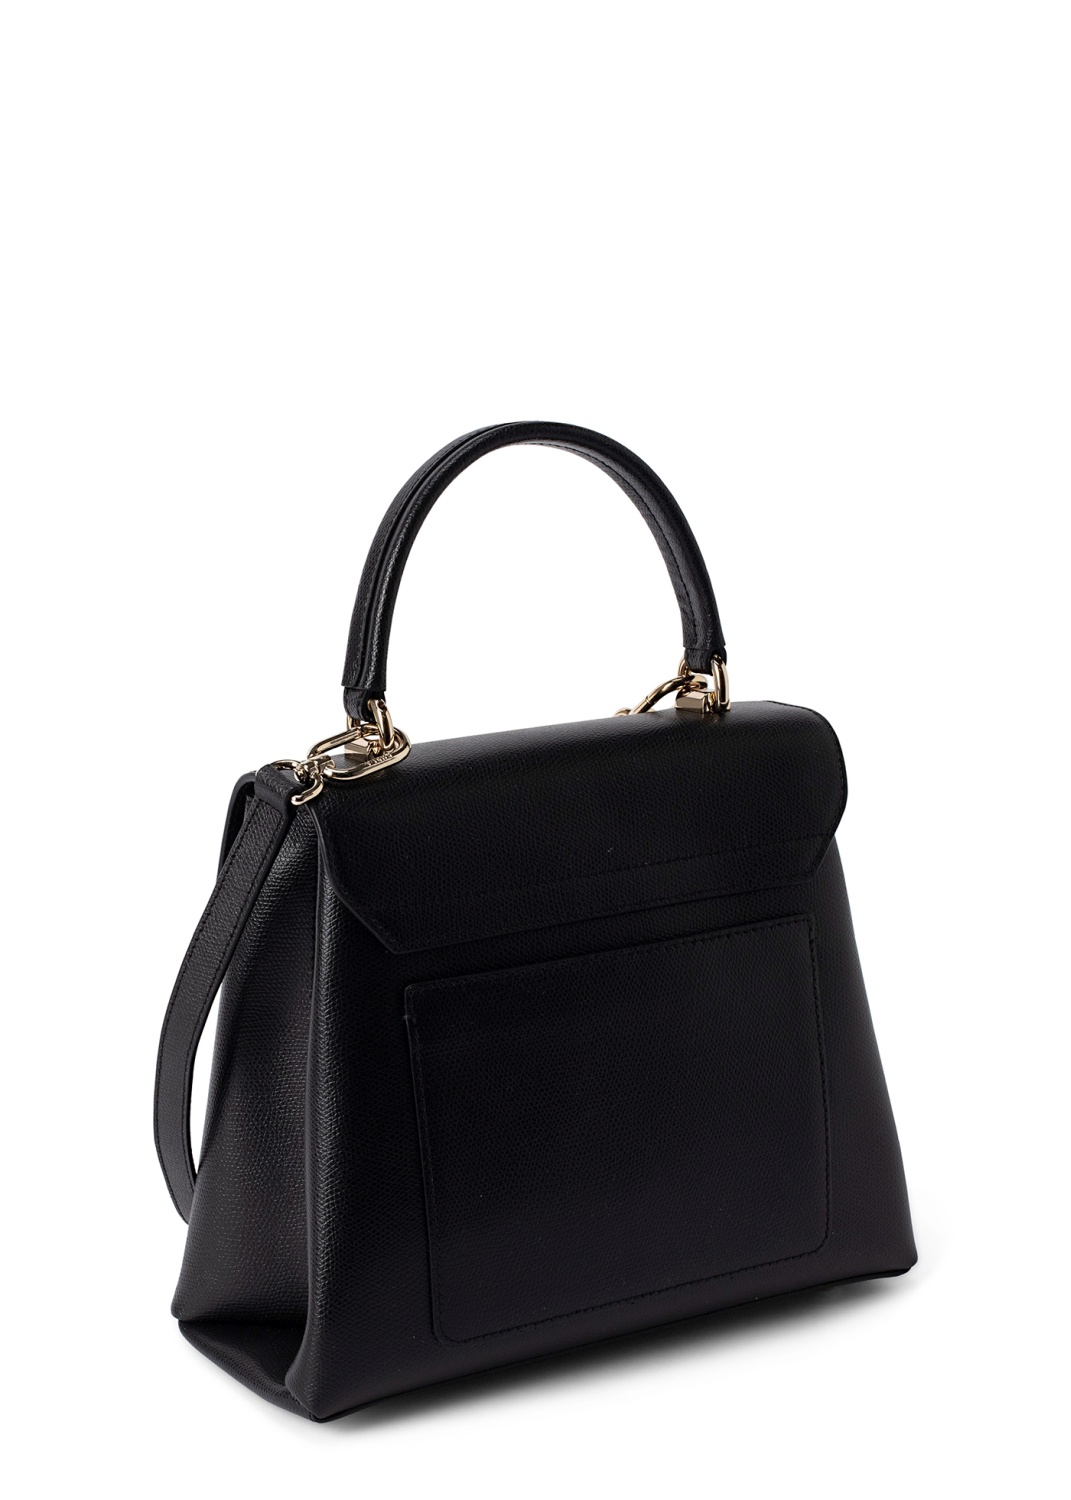 FURLA 1927 S TOP HANDLE image number 1